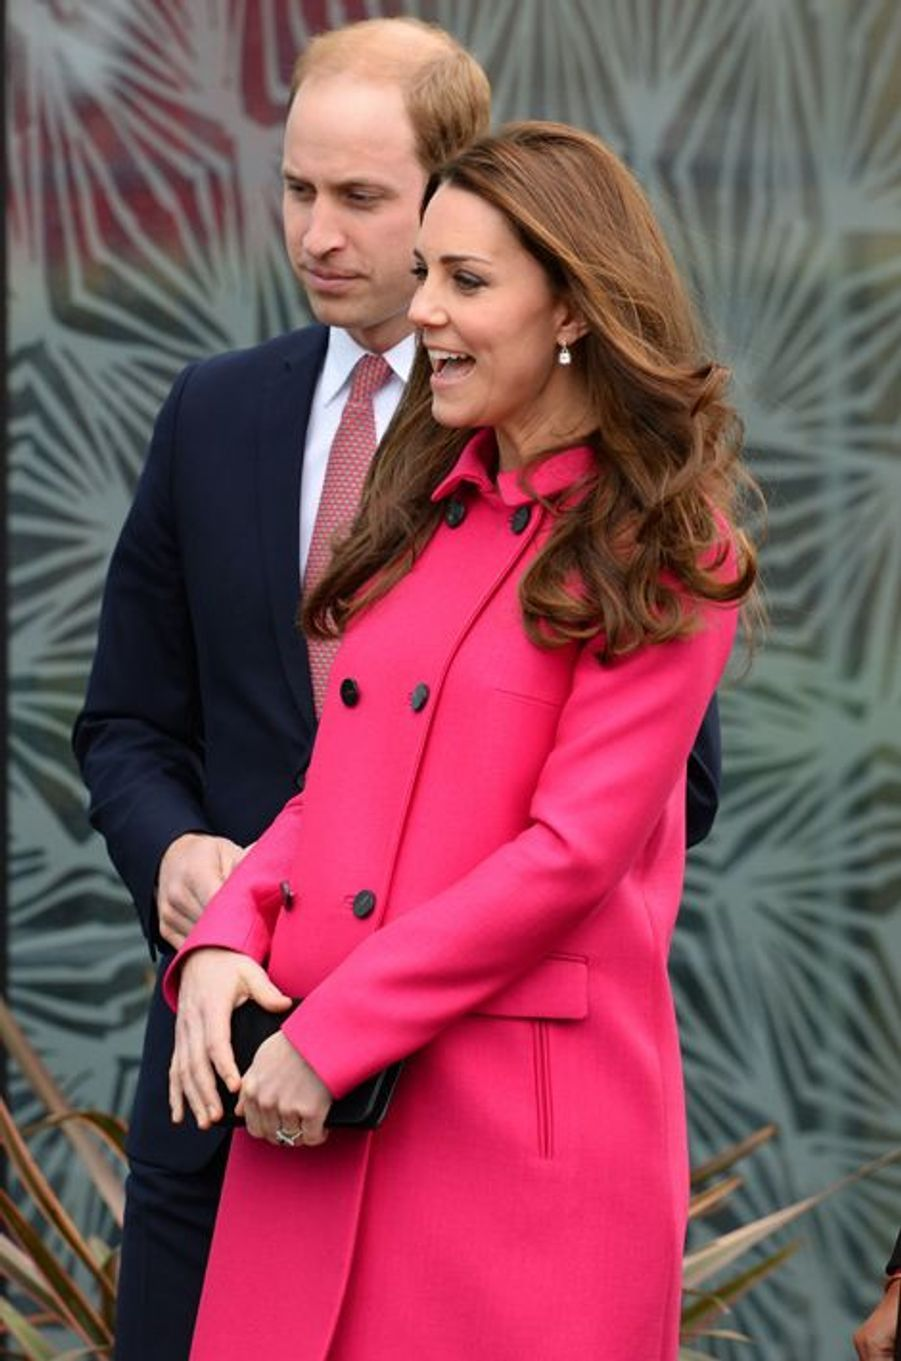 Kate née Middleton et le prince William quittent le Stephen Lawrence Centre à Londres, le 27 mars 2015